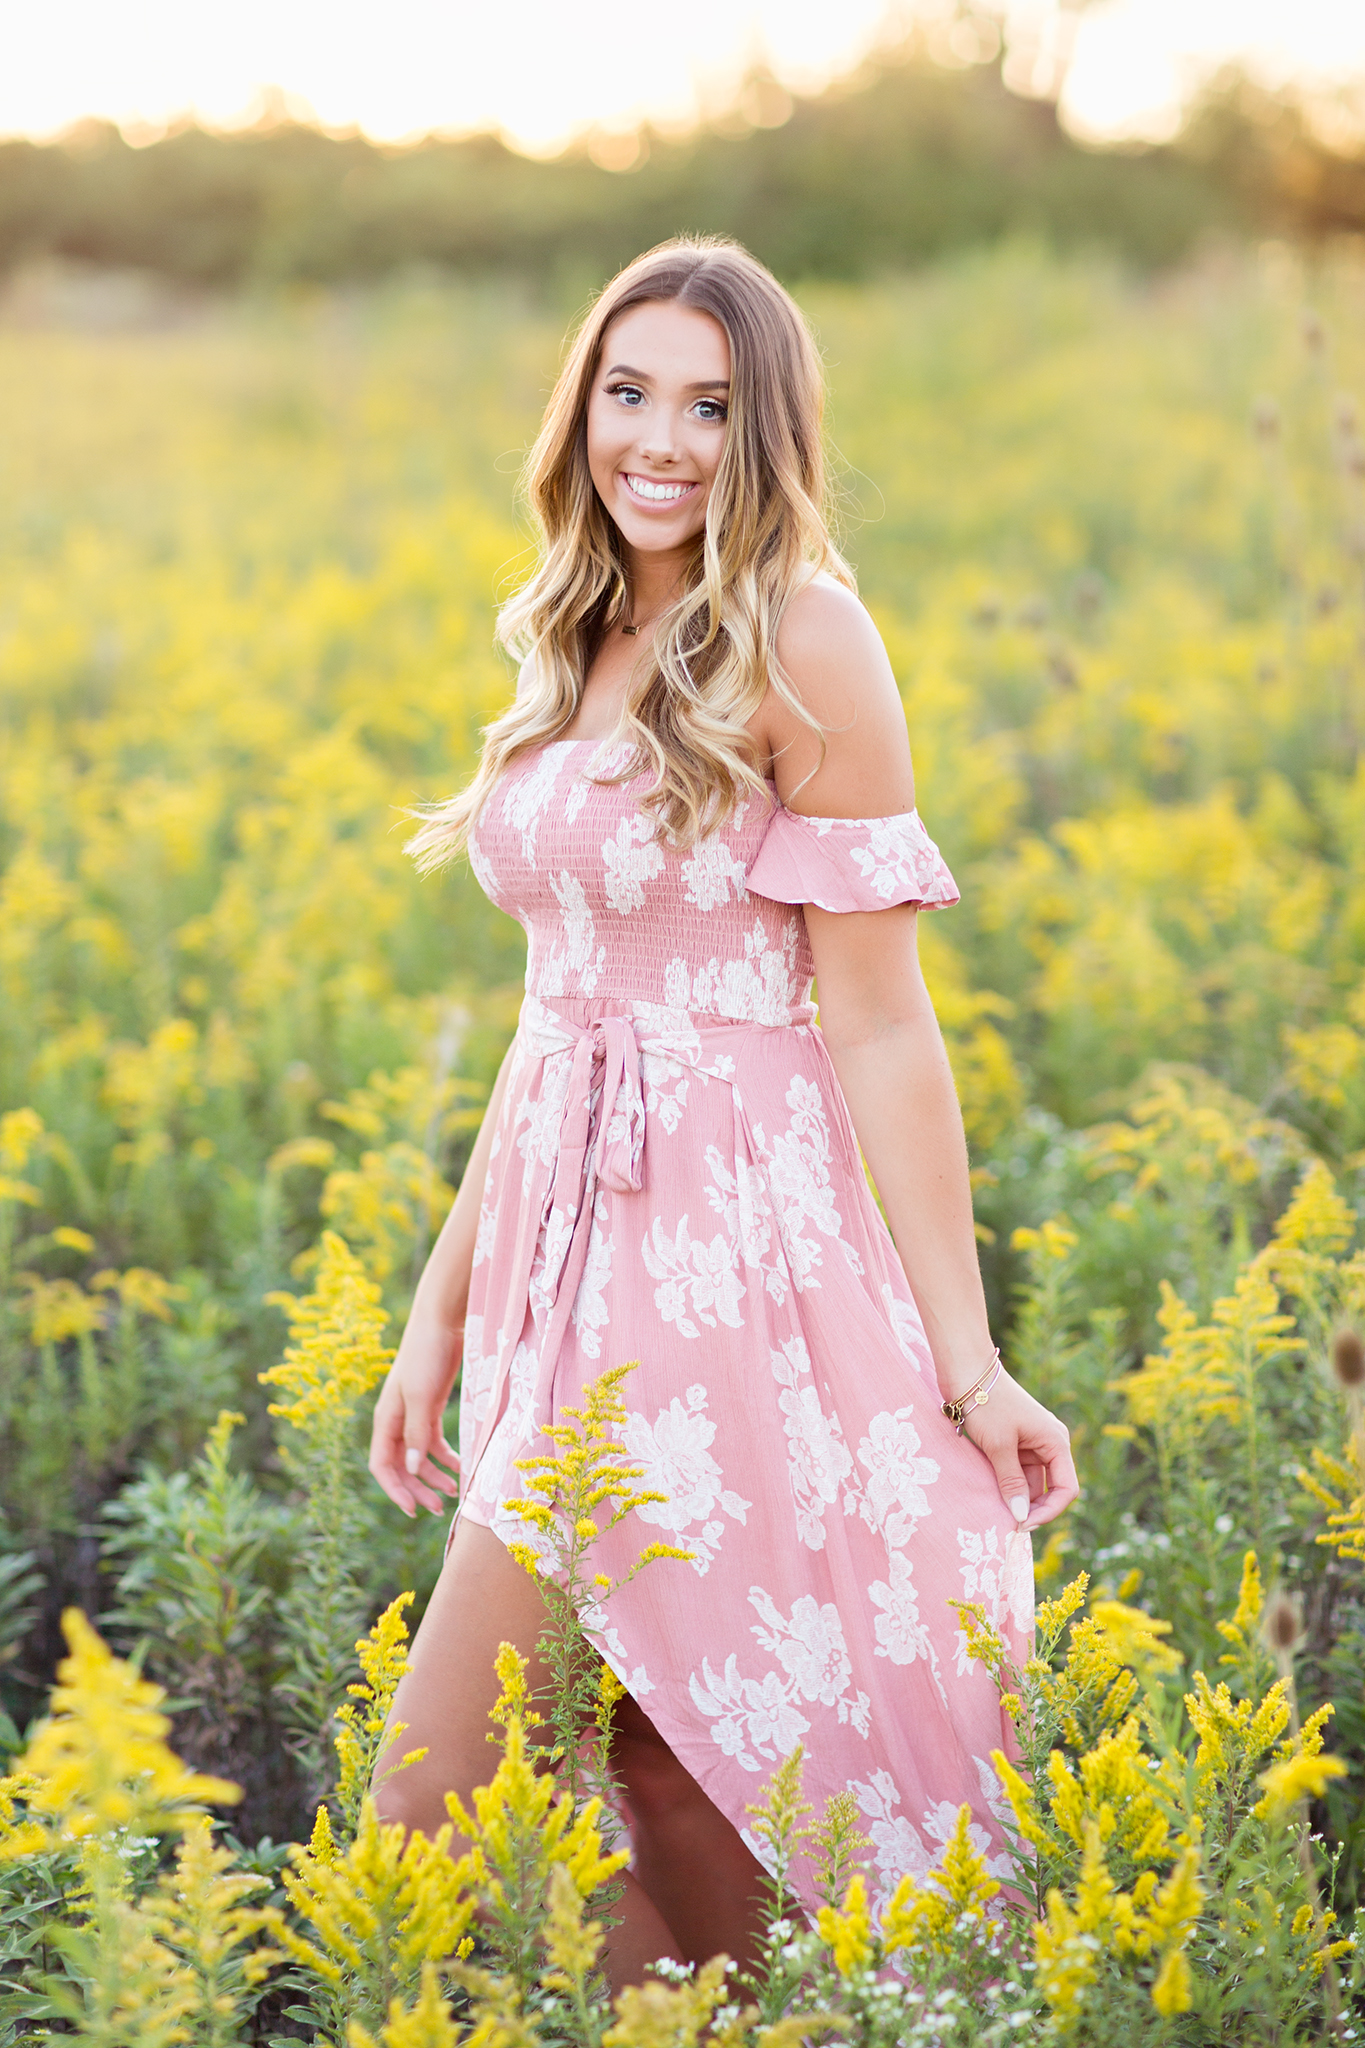 madison_asher-1006-Edit copy.jpg